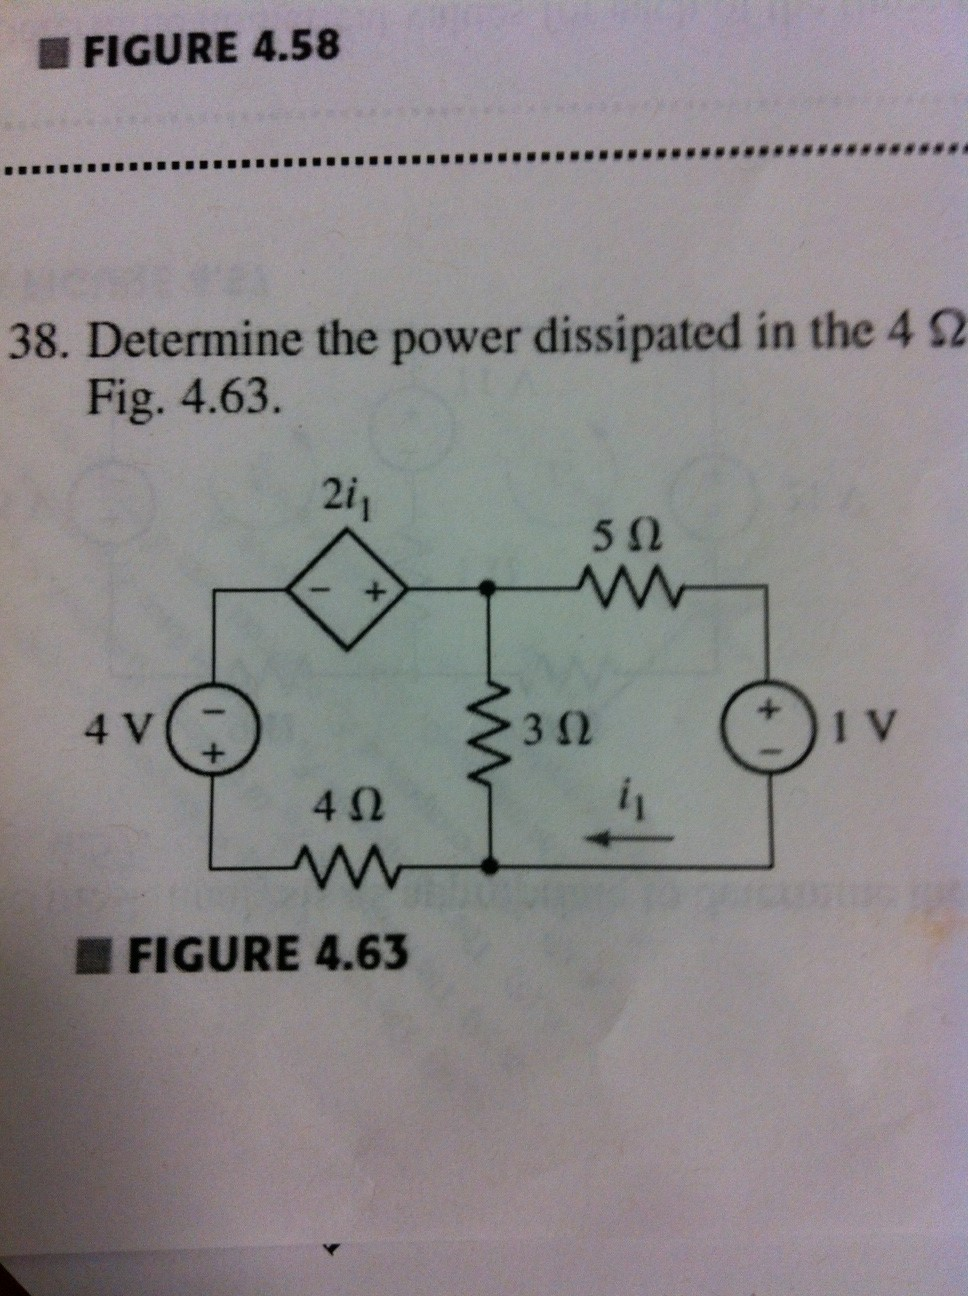 Determine the power dissipated in the 4 ohm